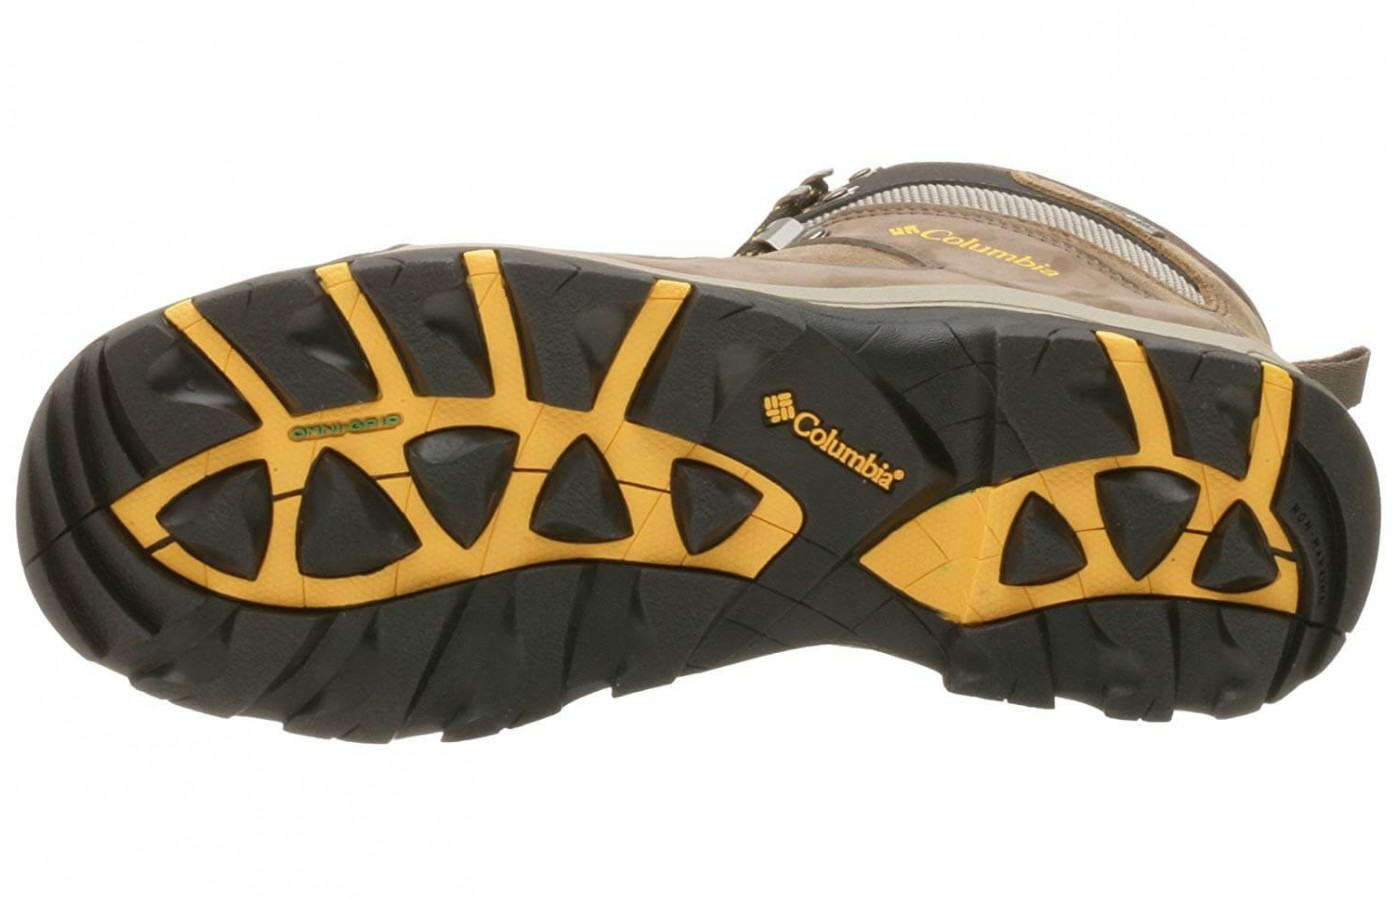 Columbia Frontier Peak GTX Sole